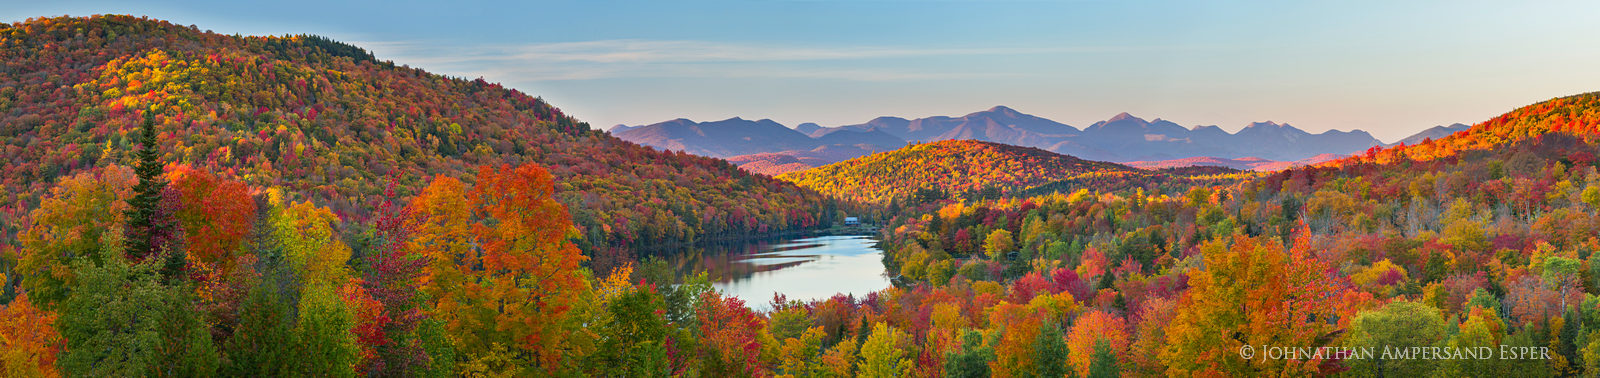 Balfour Lake from private property of Camp Baco telephoto panorama of the Adirondack High Peaks to the north,  with visible L...